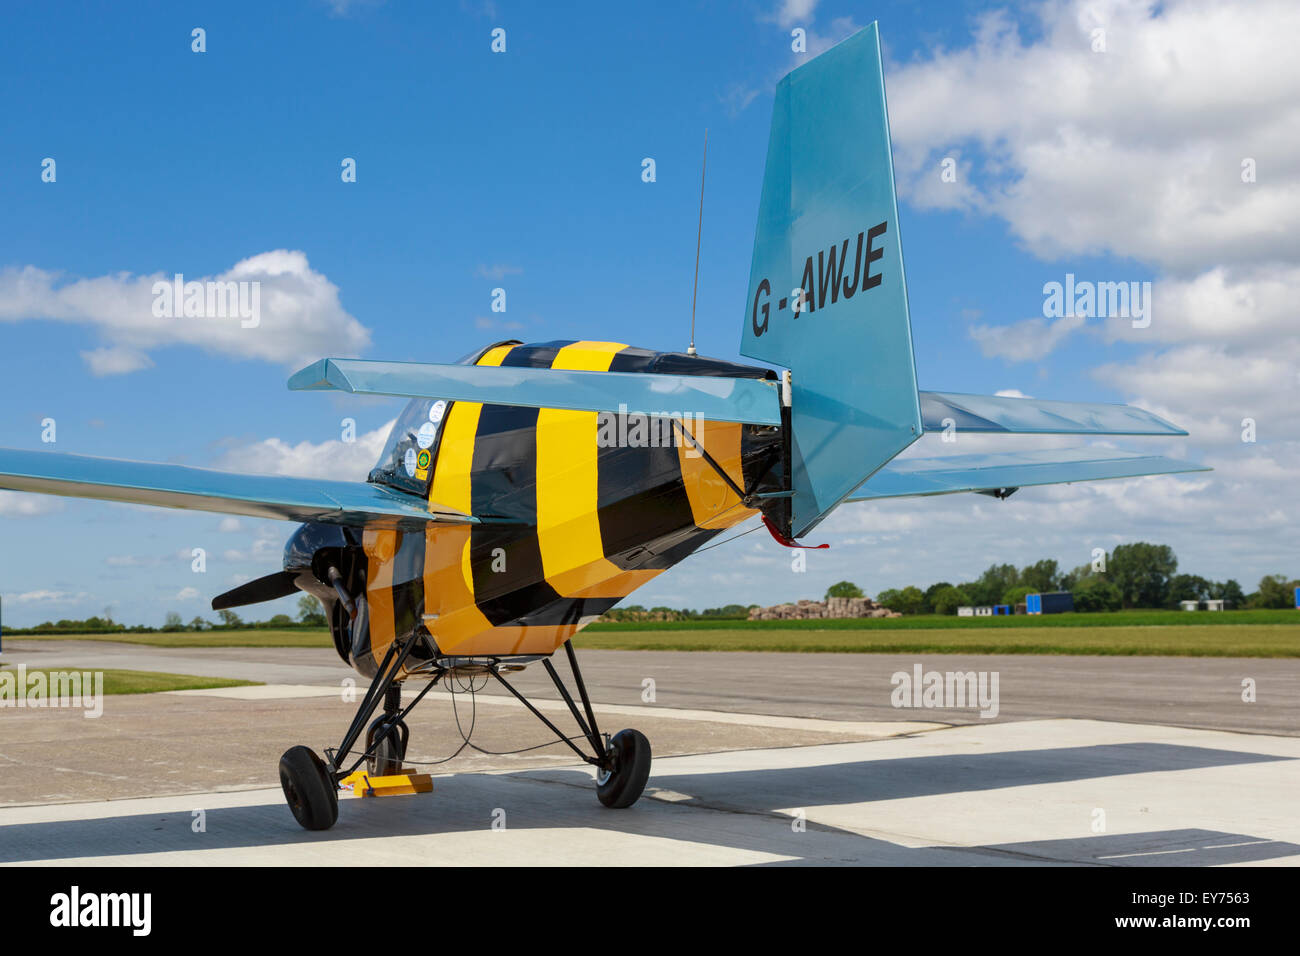 Slingsby Nipper T66, reg. G-AWJE,  at Breighton, painted as a bumble-bee - Stock Image